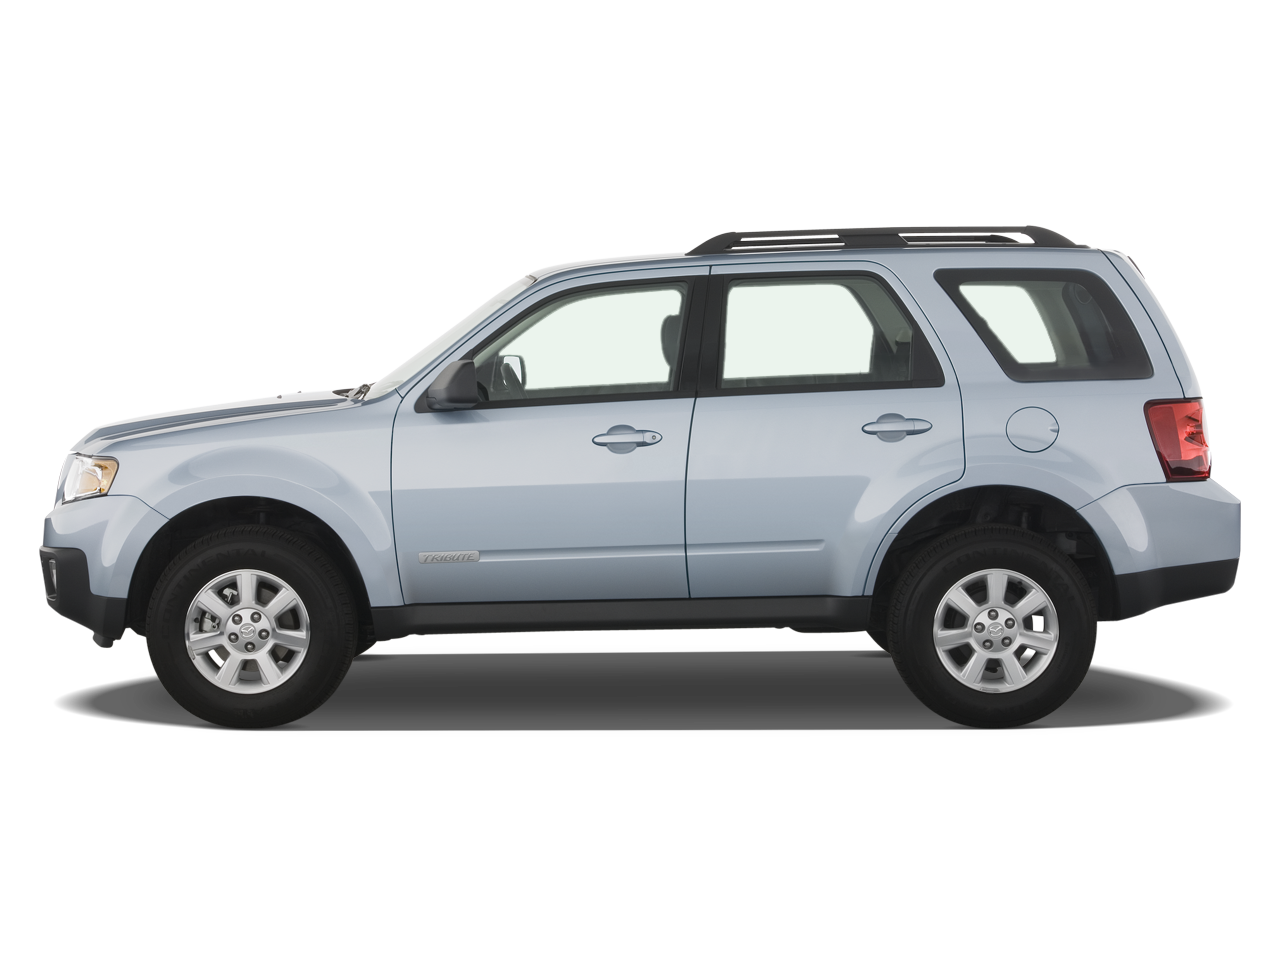 http://st.automobilemag.com/uploads/sites/10/2015/11/2008-mazda-tribute-s-sport-fwd-suv-side-view.png